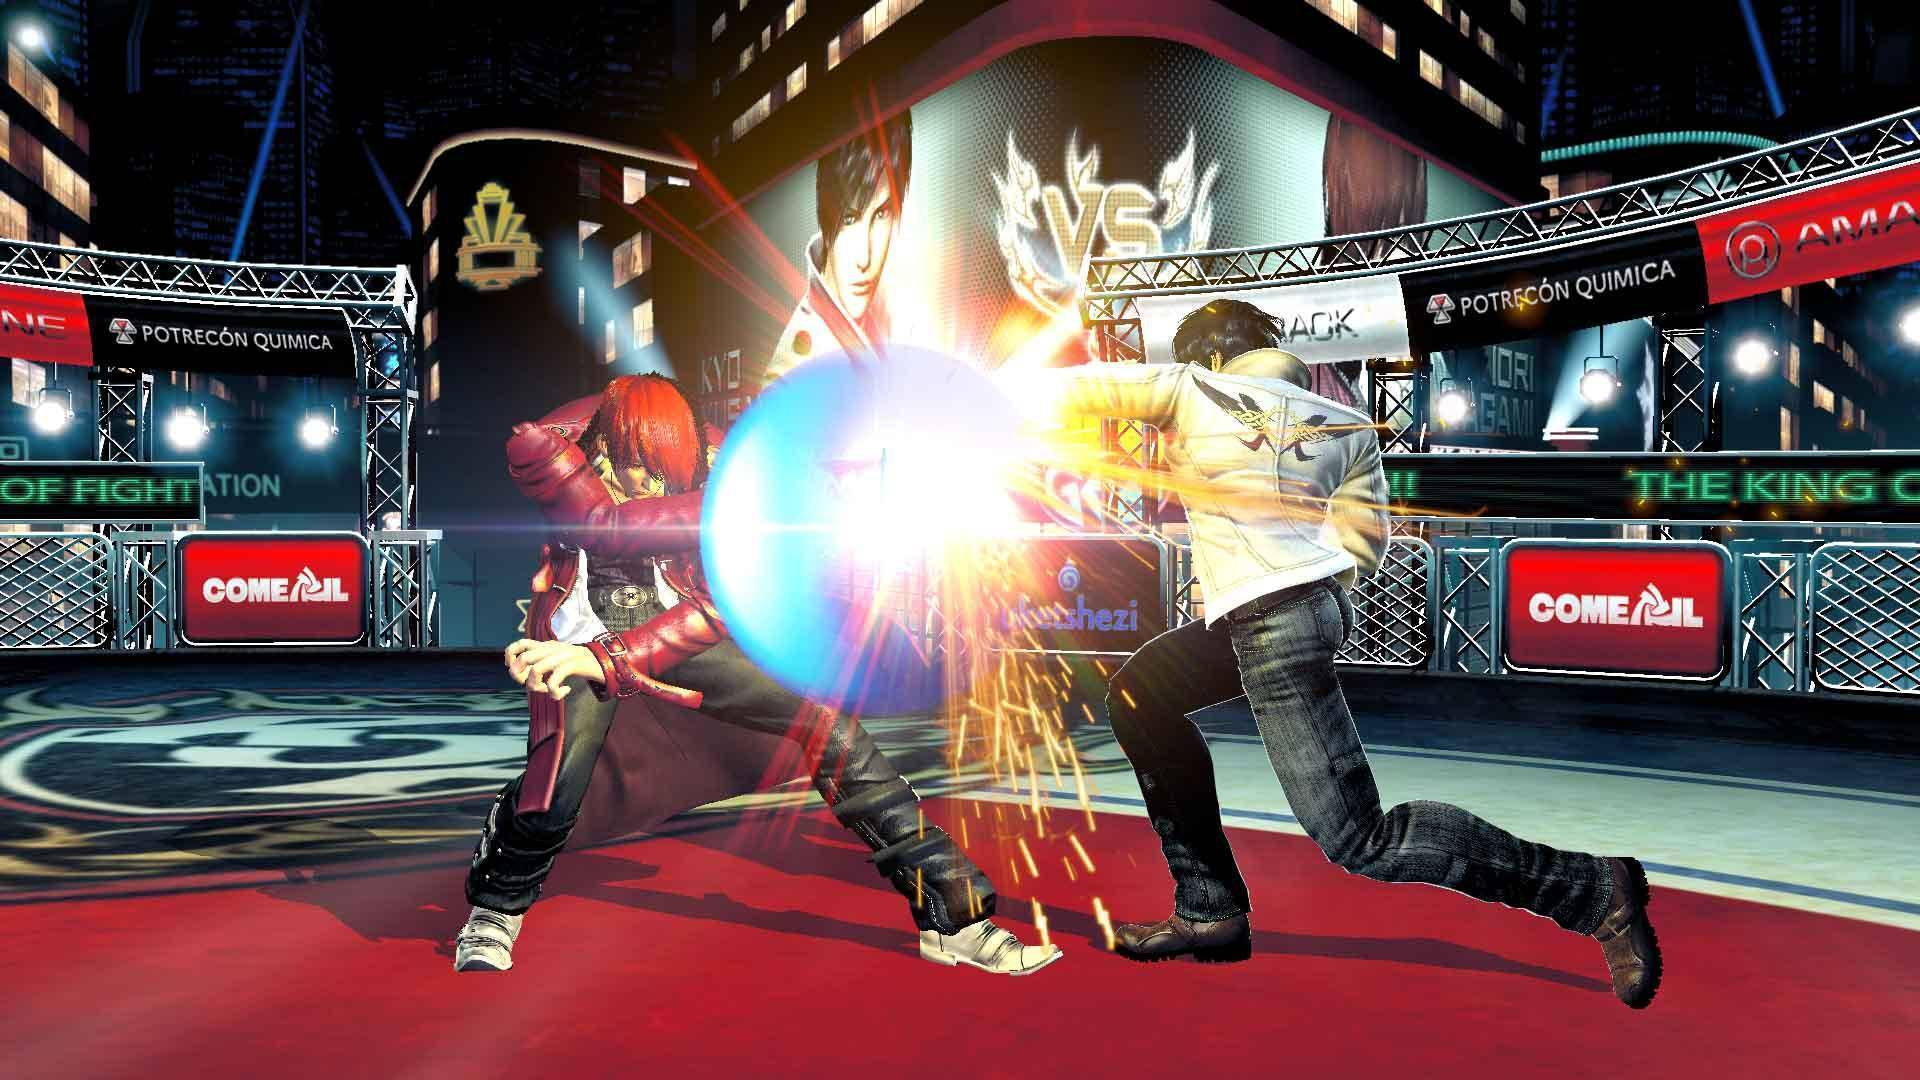 Titel des Artikels überThe King of Fighters XIV